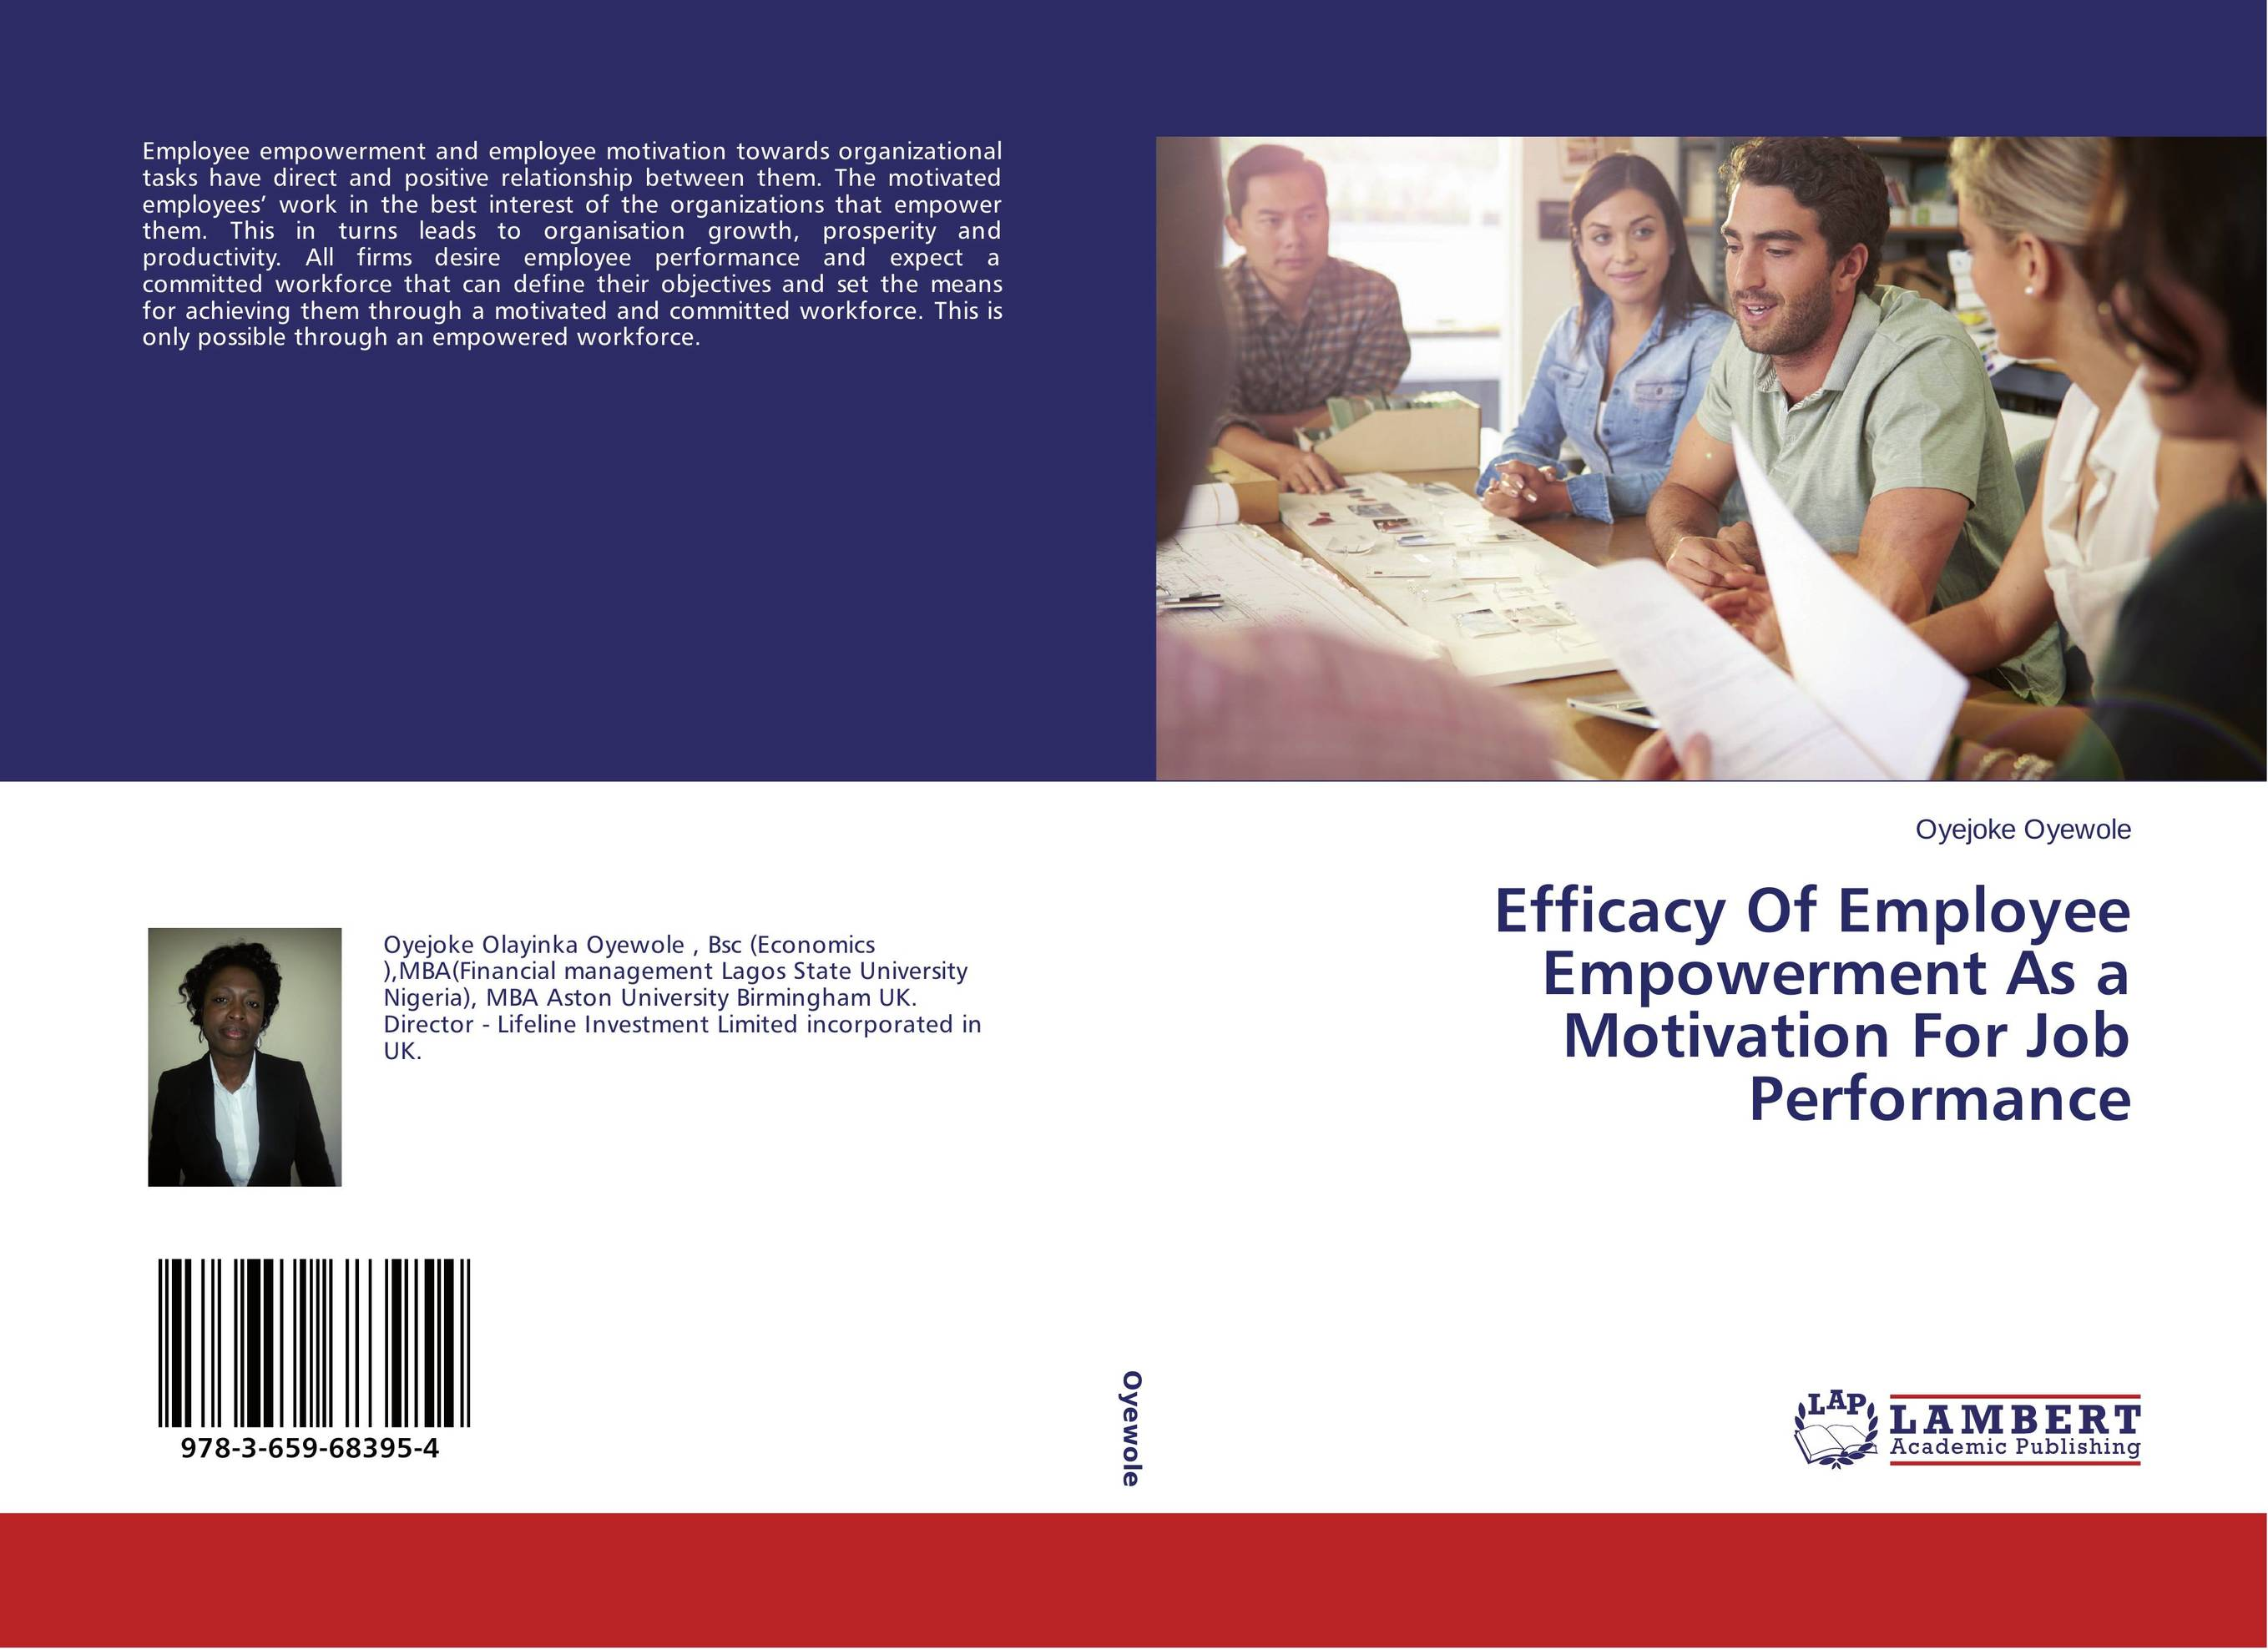 effectiveness of employee empowerment 1 measuring empowerment in practice: structuring analysis and framing indicators ruth alsop nina heinsohn world bank policy research working paper 3510, february 2005.